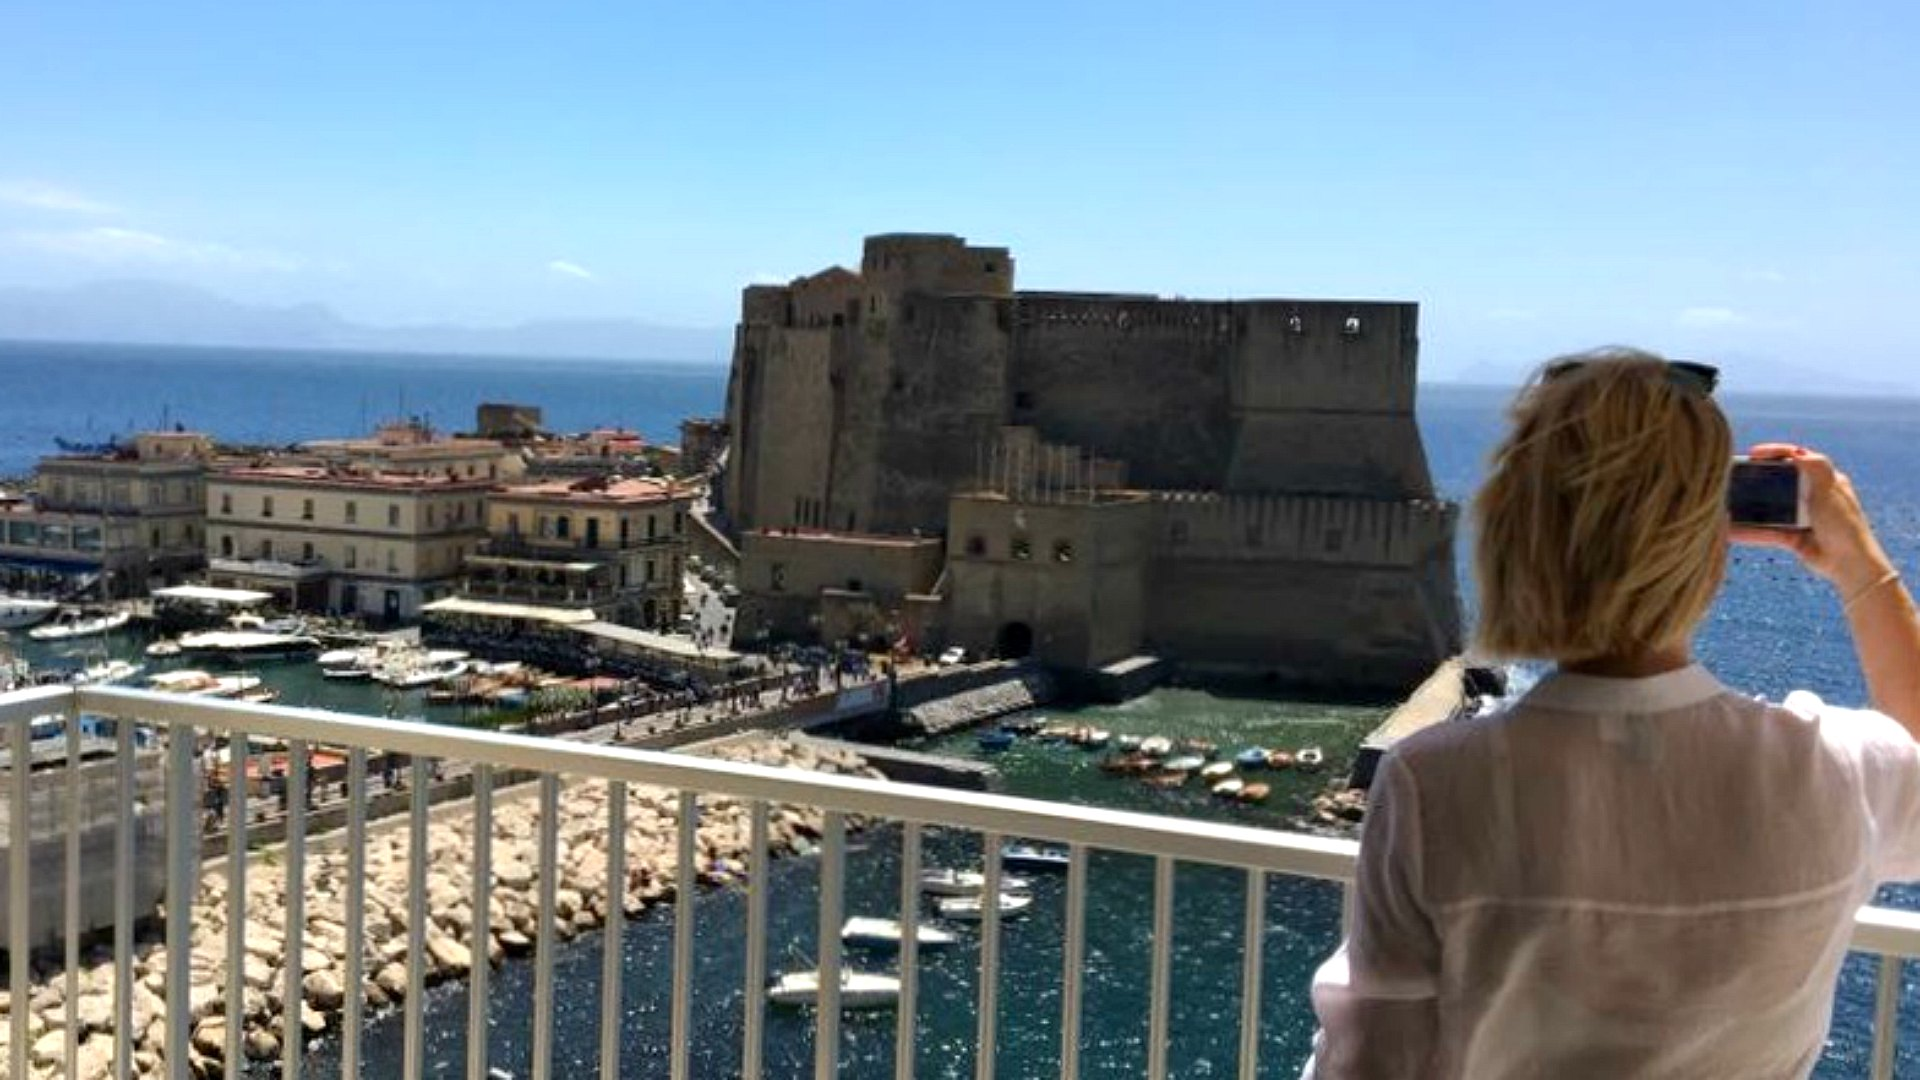 Naples - Castel dell'Ovo with me